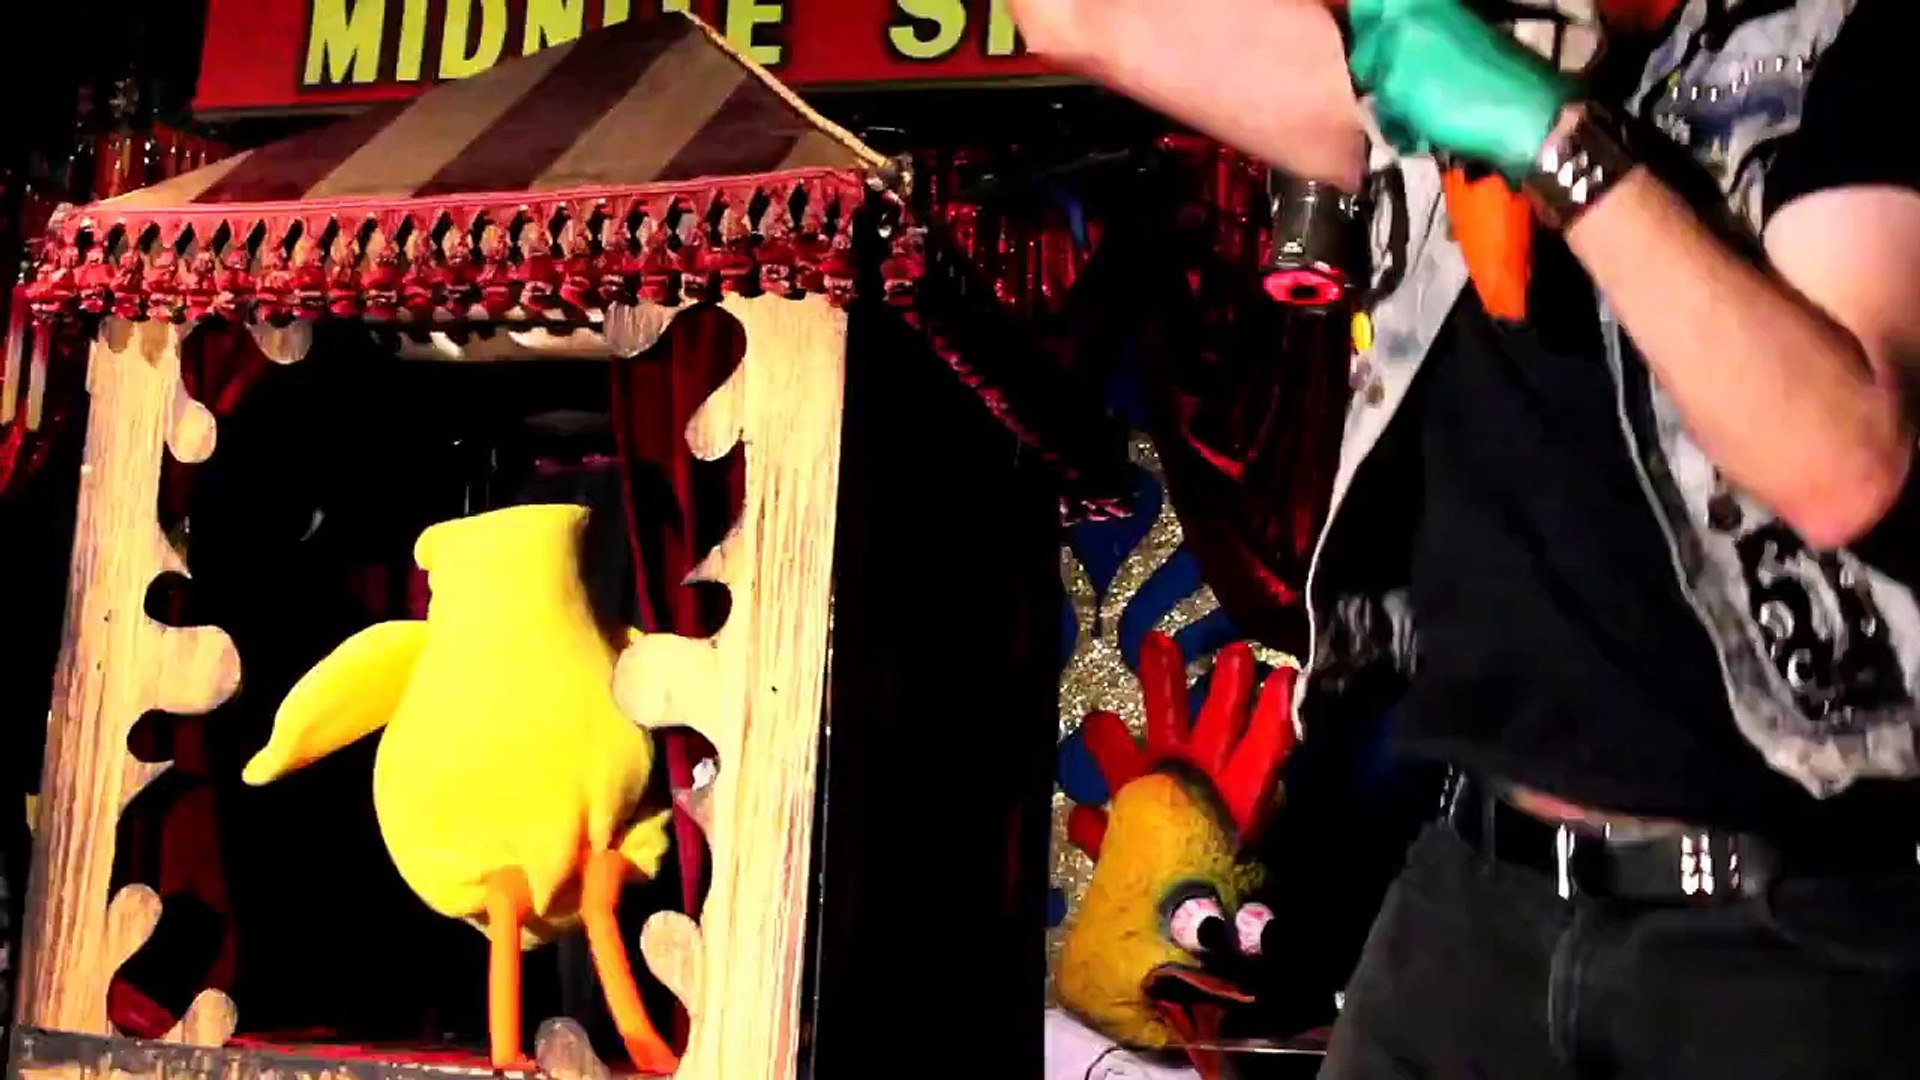 Headless Mike (Mike the Headless Chicken song) Radioactive Chicken Heads music video